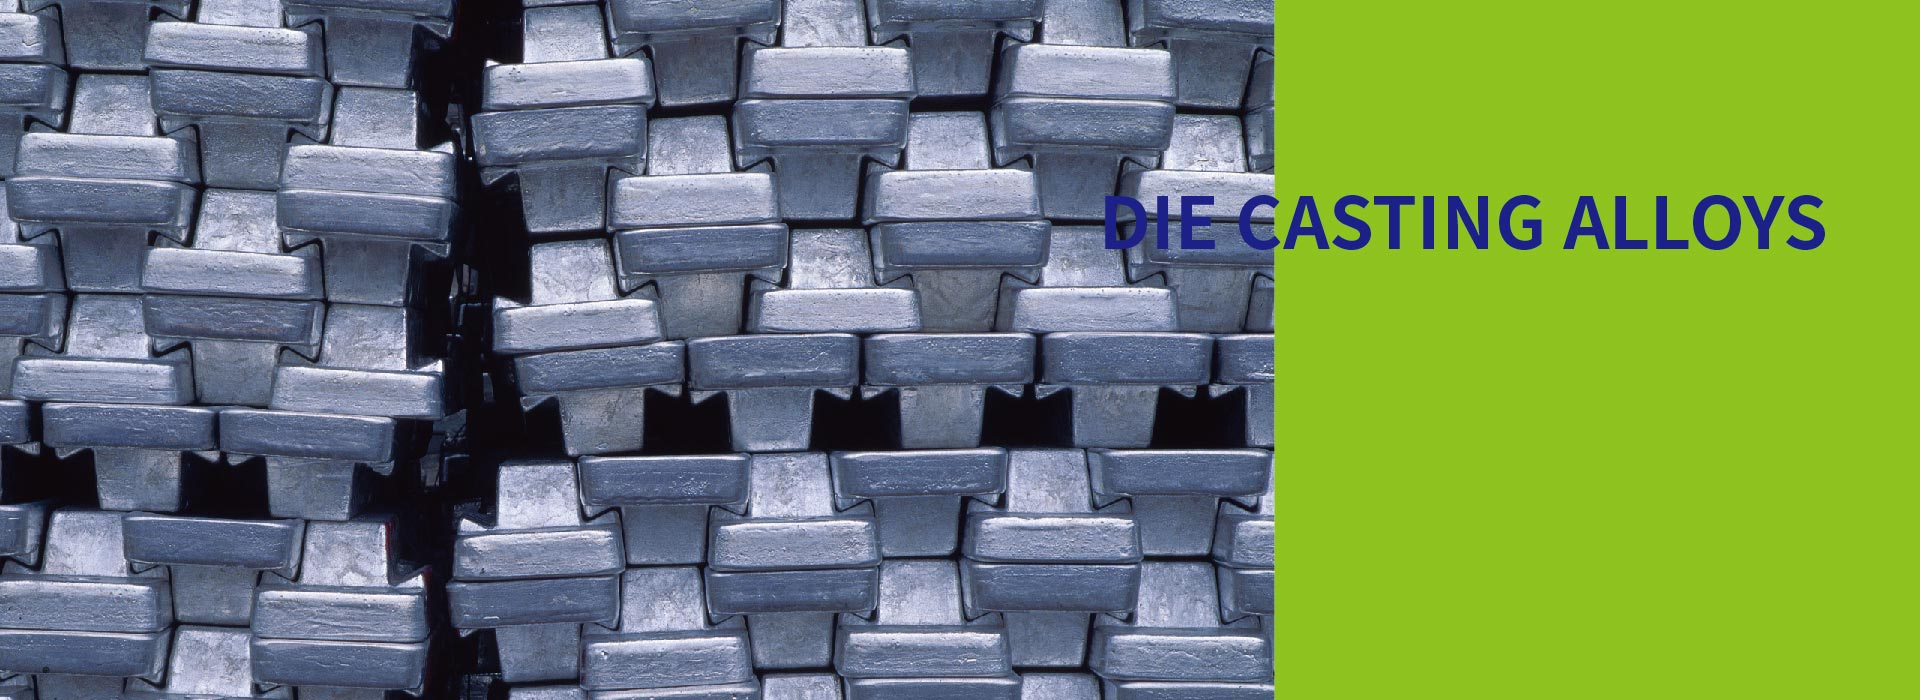 Die casting alloys-01